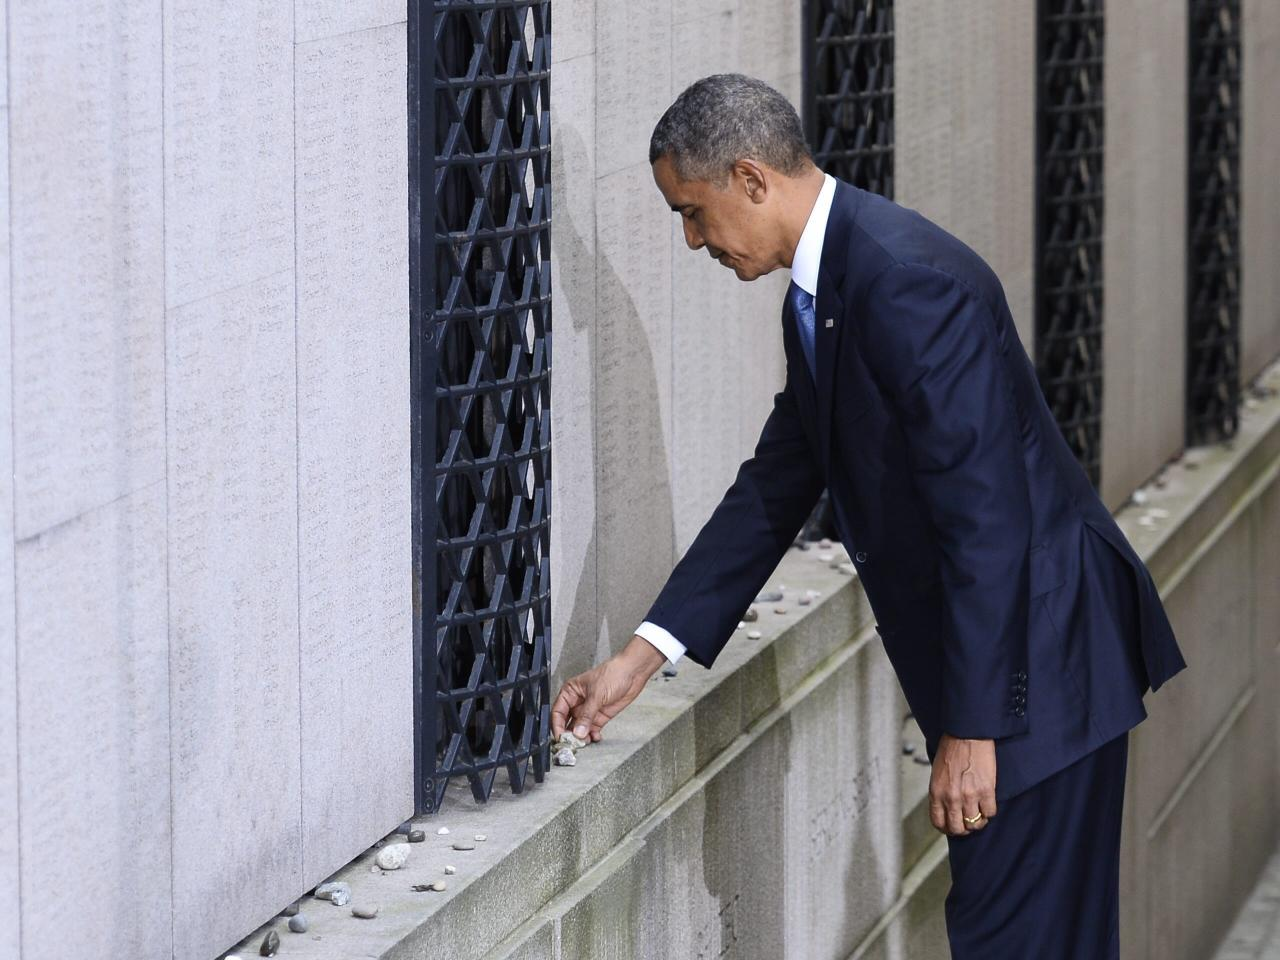 U.S. President Barack Obama places a stone in memory of Swedish diplomat Raould Wallenberg at the Stockholm Synagogue September 4, 2013. Wallenberg issued thousands of protective passports to jews in nazi-occupied Hungary in 1944-45. Obama is on a two-day official visit to Sweden. REUTERS/Claudio Bresciani/Scanpix (SWEDEN - Tags: POLITICS) ATTENTION EDITORS - THIS IMAGE HAS BEEN SUPPLIED BY A THIRD PARTY. IT IS DISTRIBUTED, EXACTLY AS RECEIVED BY REUTERS, AS A SERVICE TO CLIENTS. SWEDEN OUT. NO COMMERCIAL OR EDITORIAL SALES IN SWEDEN. NO COMMERCIAL SALES